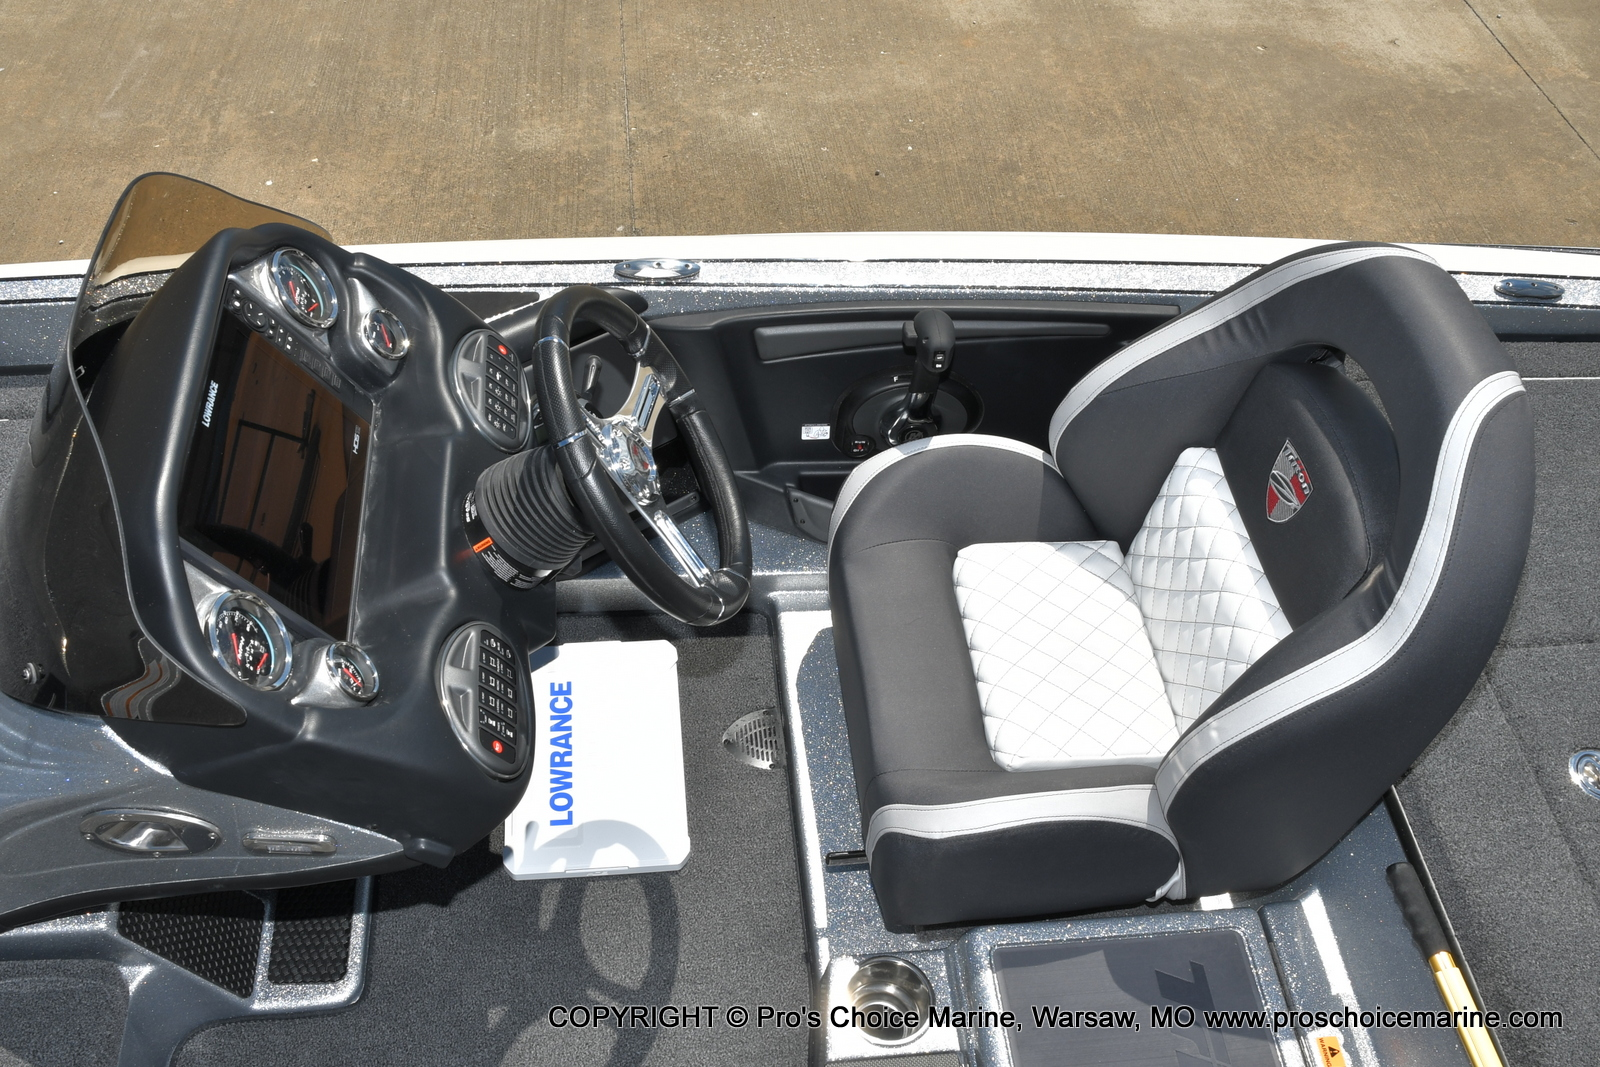 2021 Triton boat for sale, model of the boat is 21 TRX Patriot & Image # 34 of 50